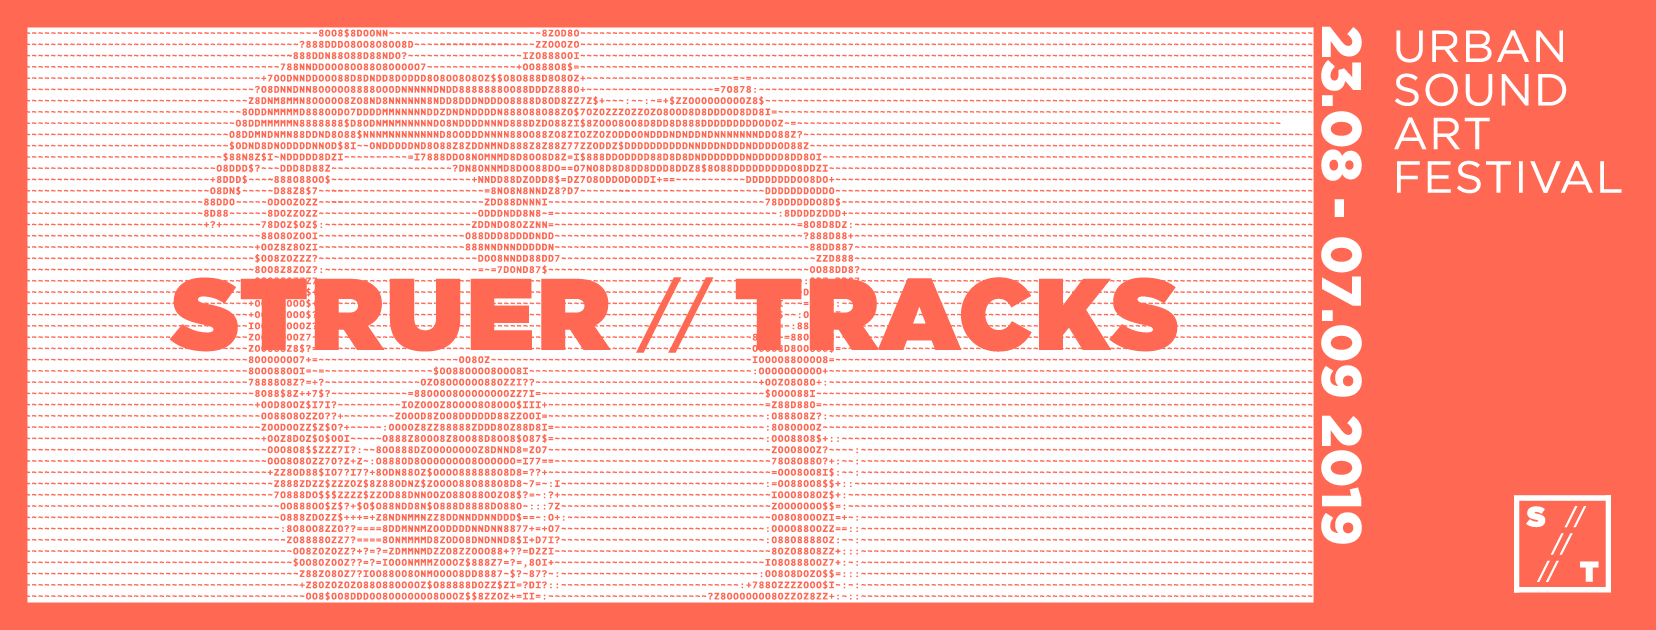 Struer Tracks, Urban Sound Art Festival